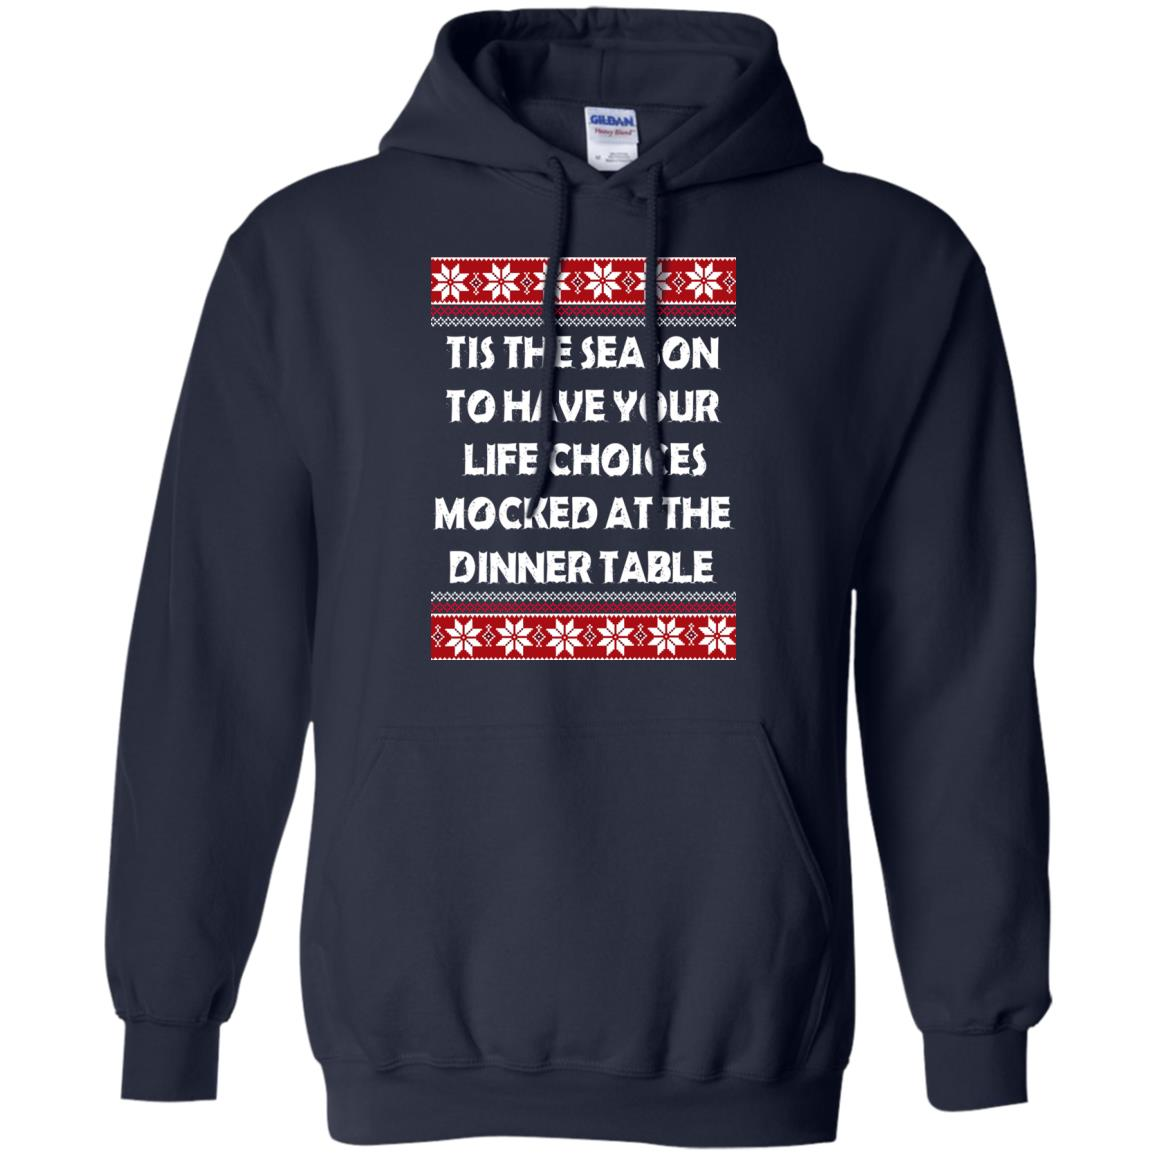 image 5895 - Tis The Season To Have Your Life Choices Mocked Christmas Sweater, Hoodie